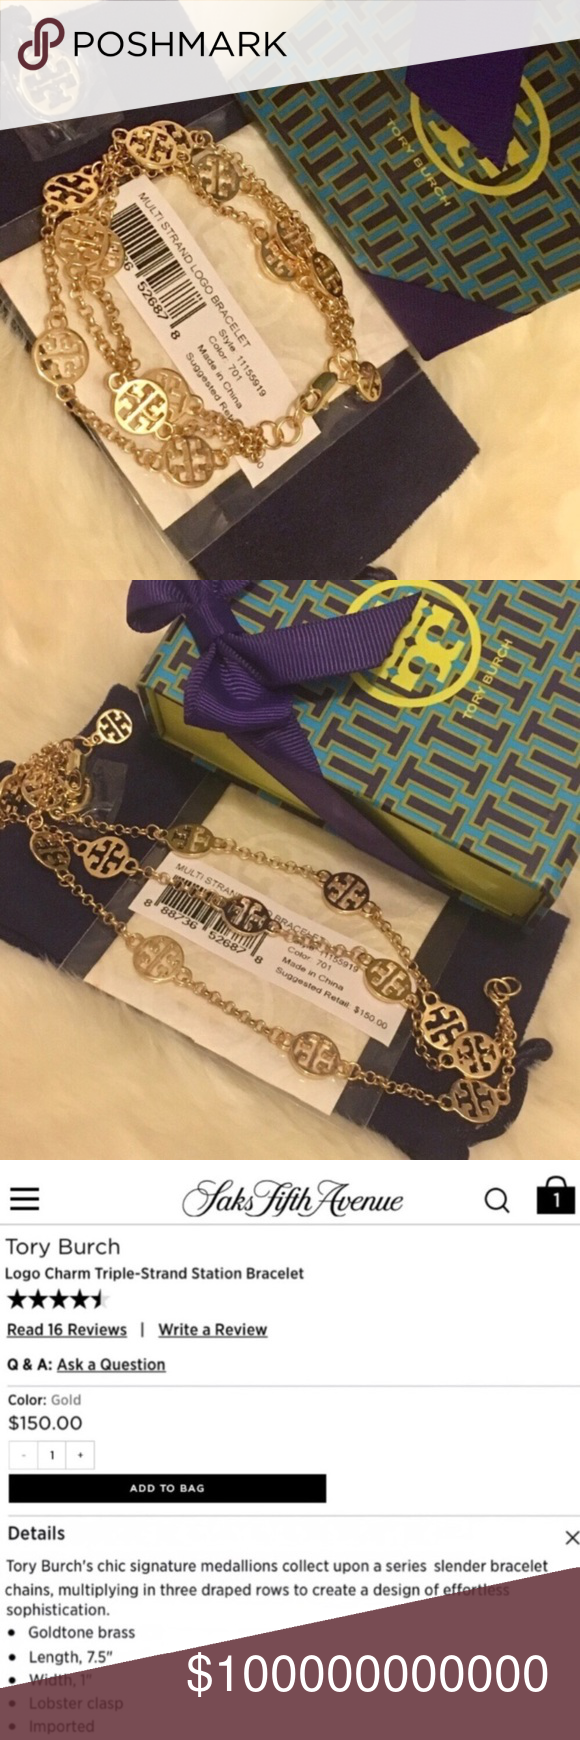 Tory Burch Multistrand Bracelet Worth over $160 (incl tax)  Brand new without tag, never worn  Price Firm No trades Tory Burch Jewelry Bracelets